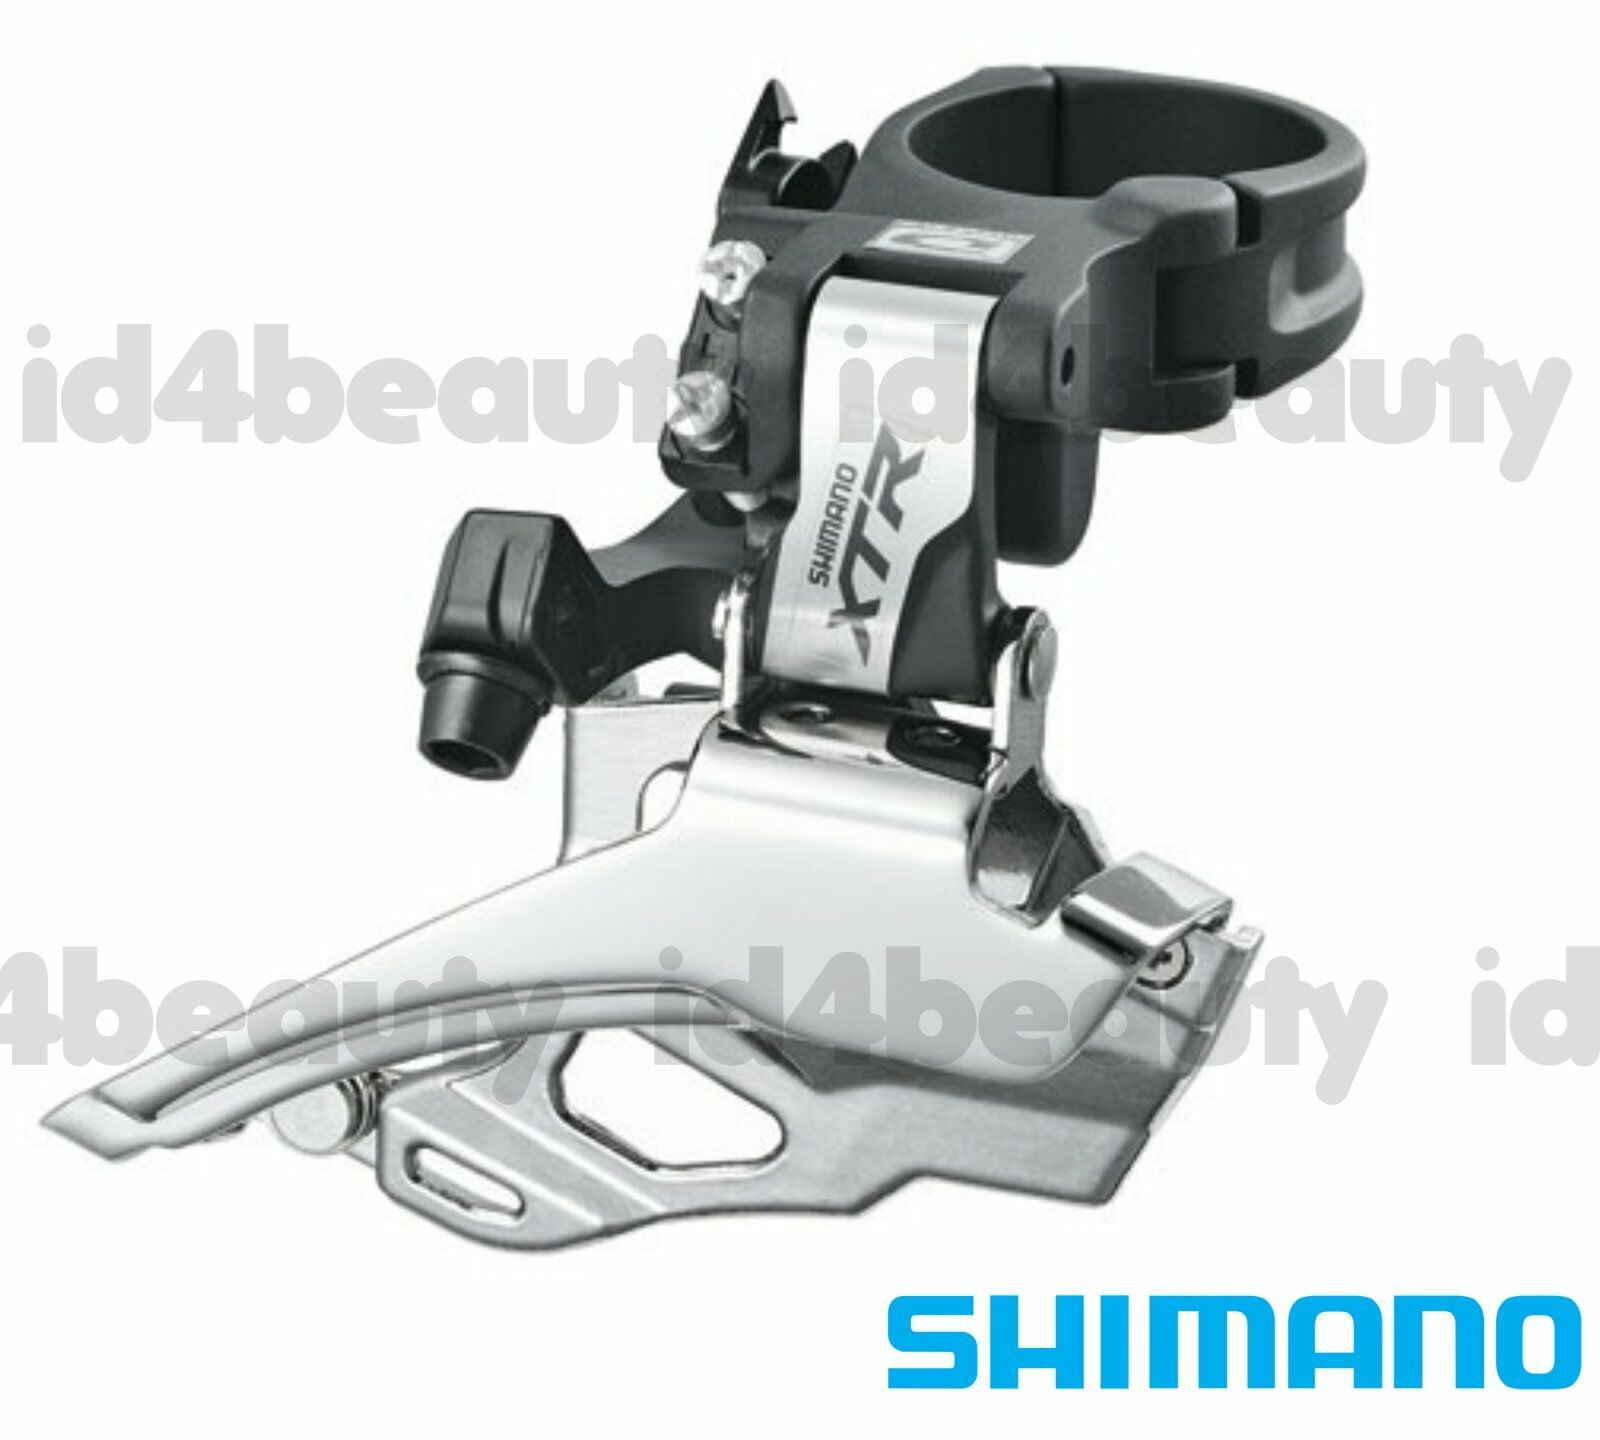 Shimano XTR Umwerfer FD-M986 Down Swing Dual Pull  10x2 Speed  hottest new styles